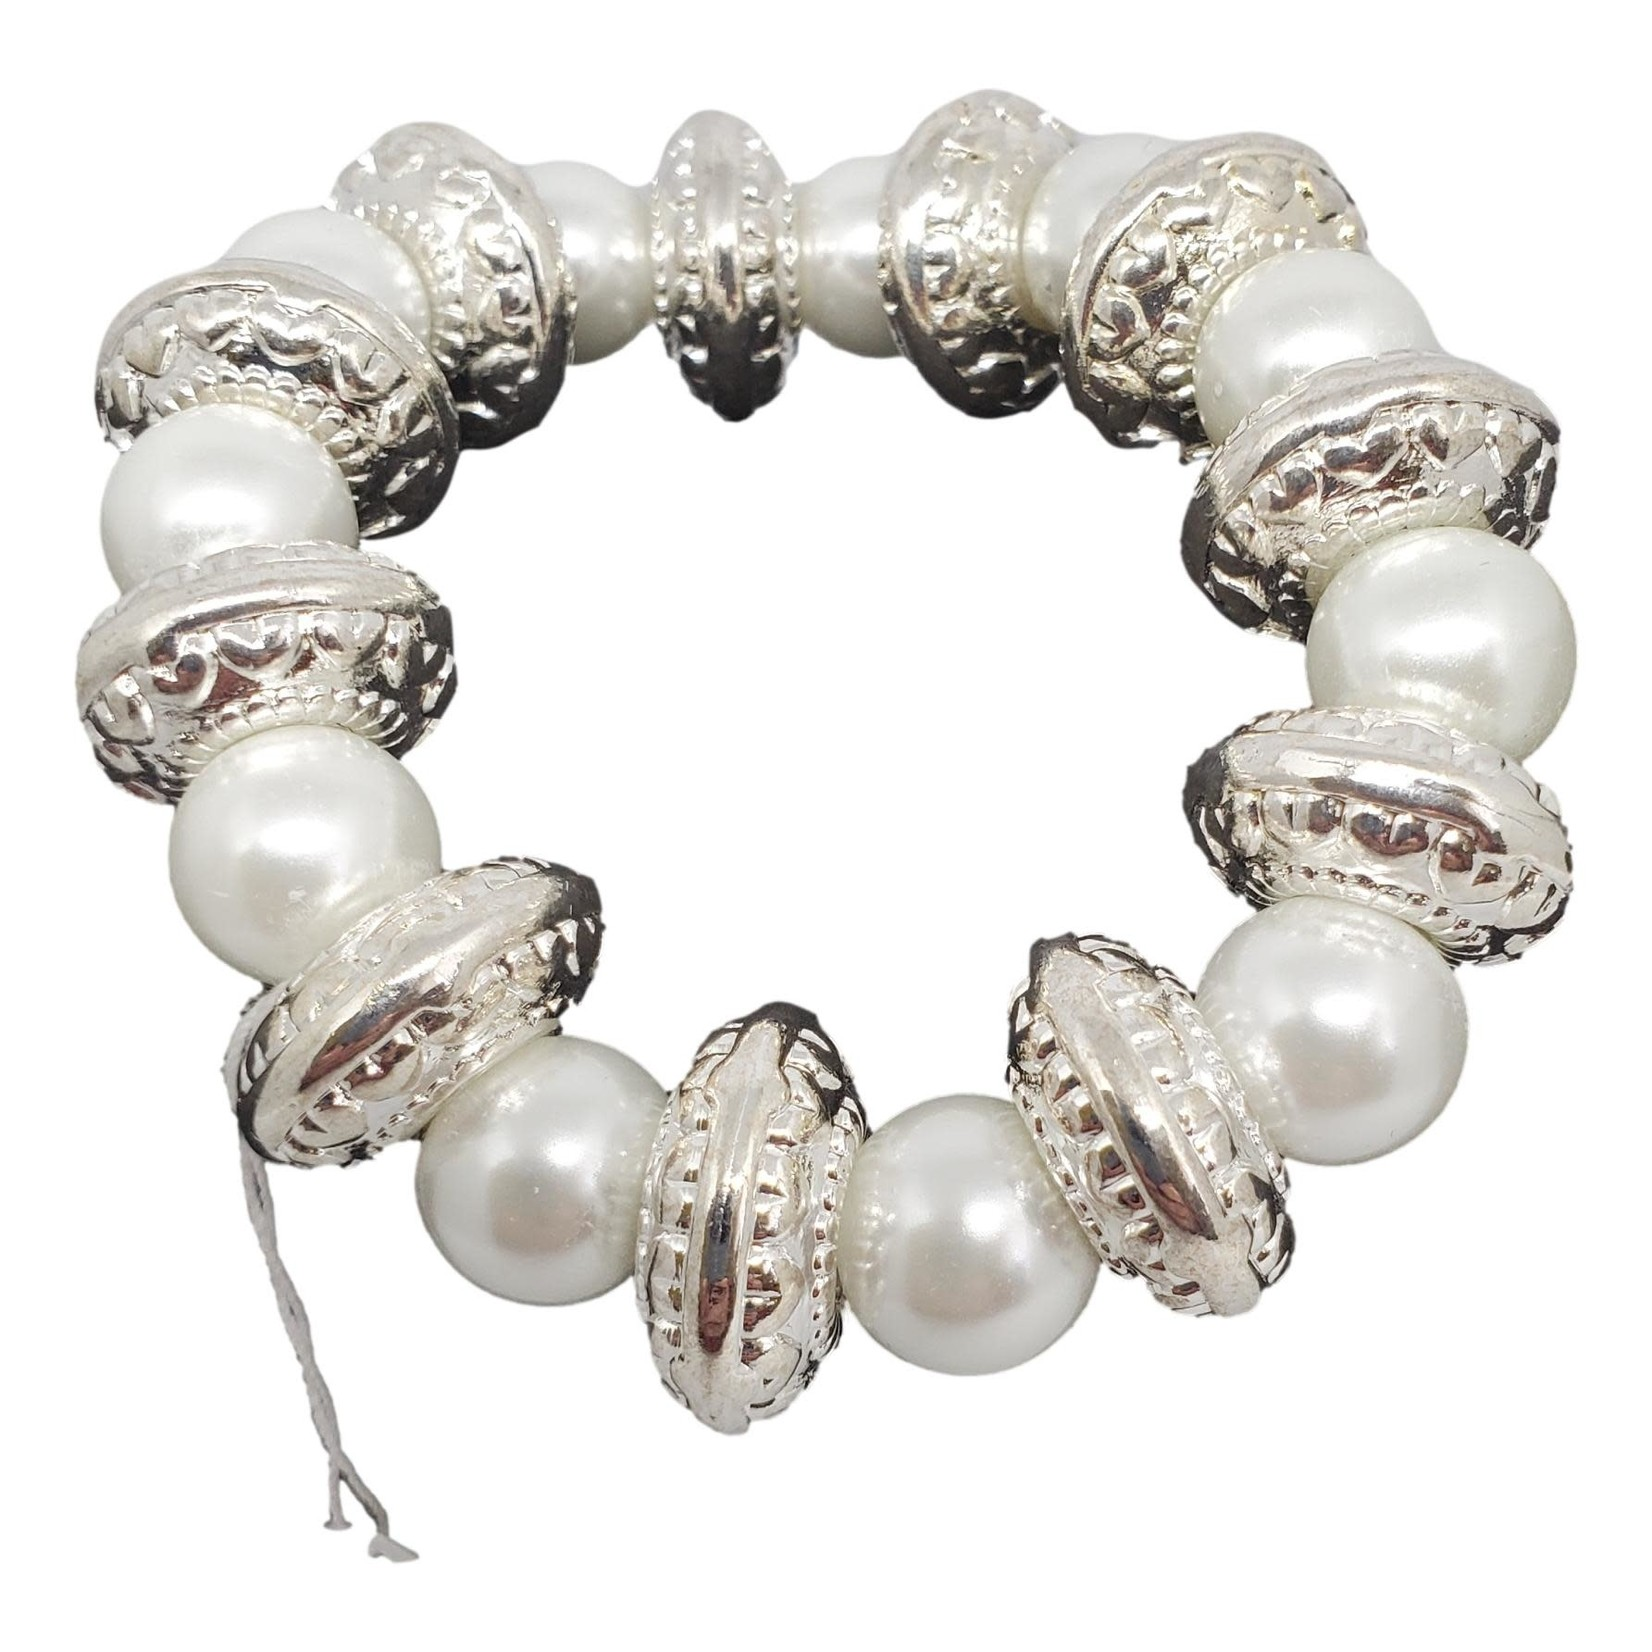 Jewellery by Deborah Young-Groves Large Pearls with Tibetan Silver Beads Bracelet